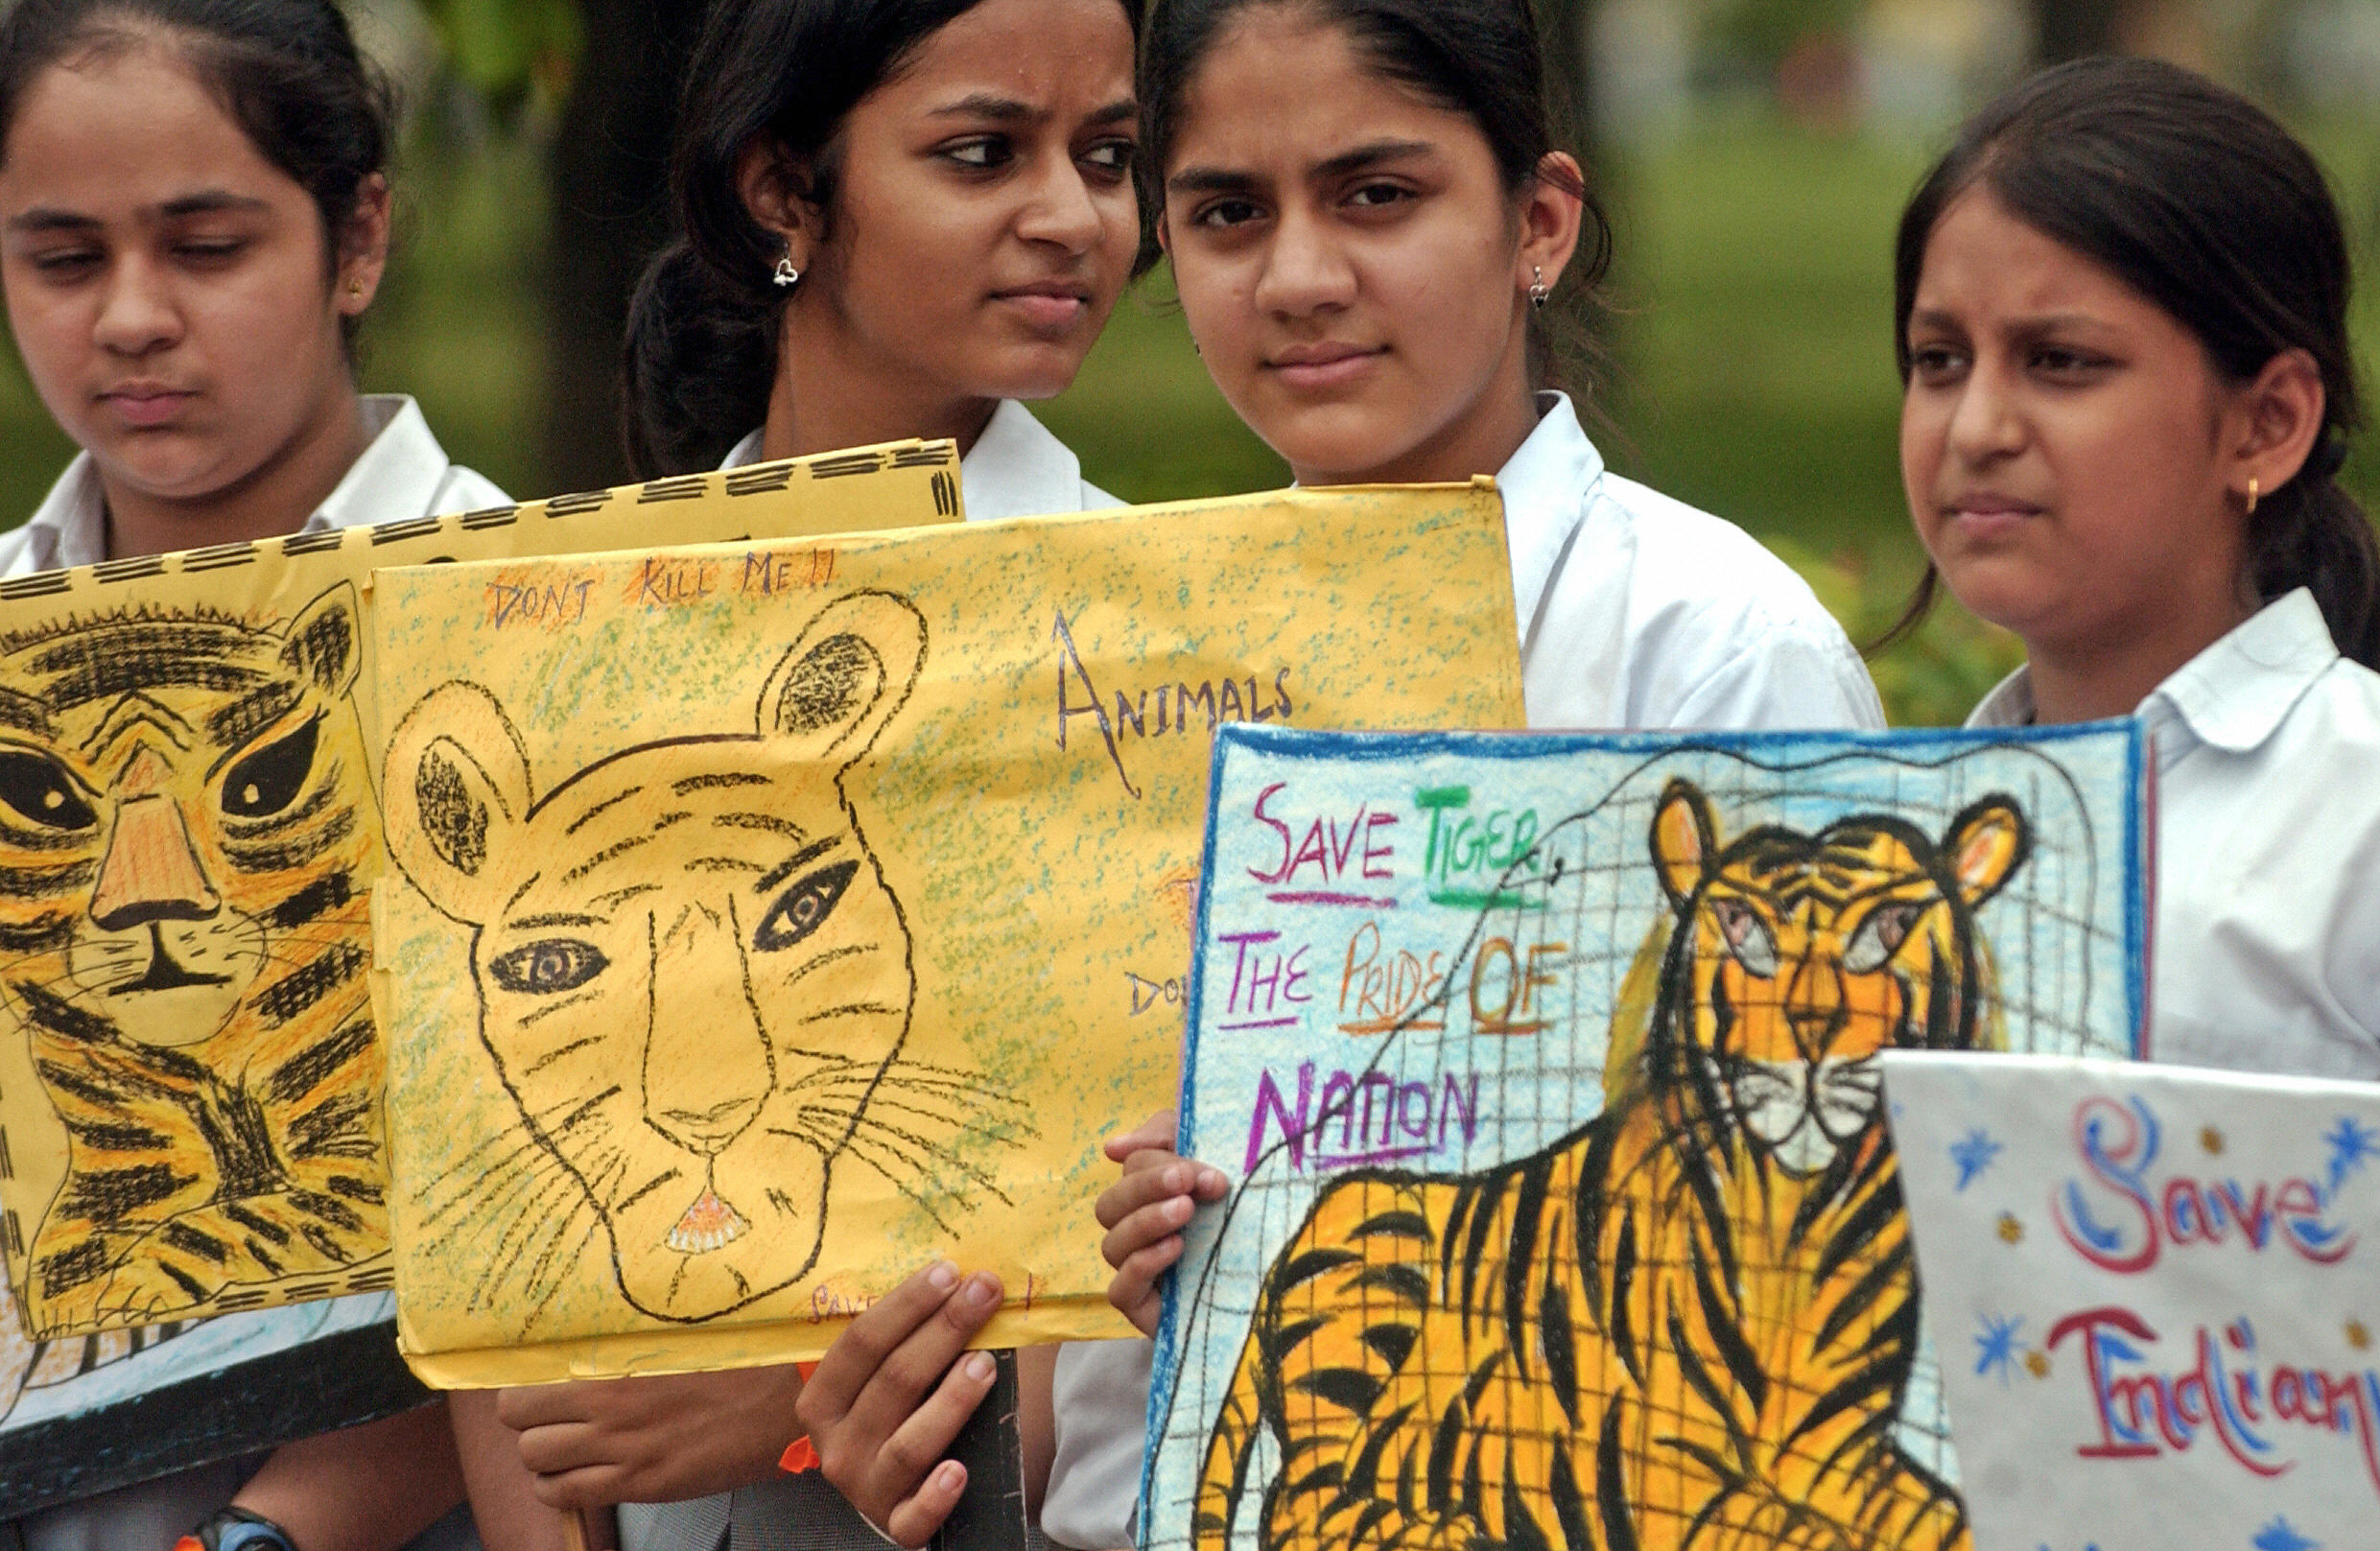 Indian school children hold placards during a rally held to raise awareness for the protection of tigers and forests in India, in New Delhi, July 11, 2006.